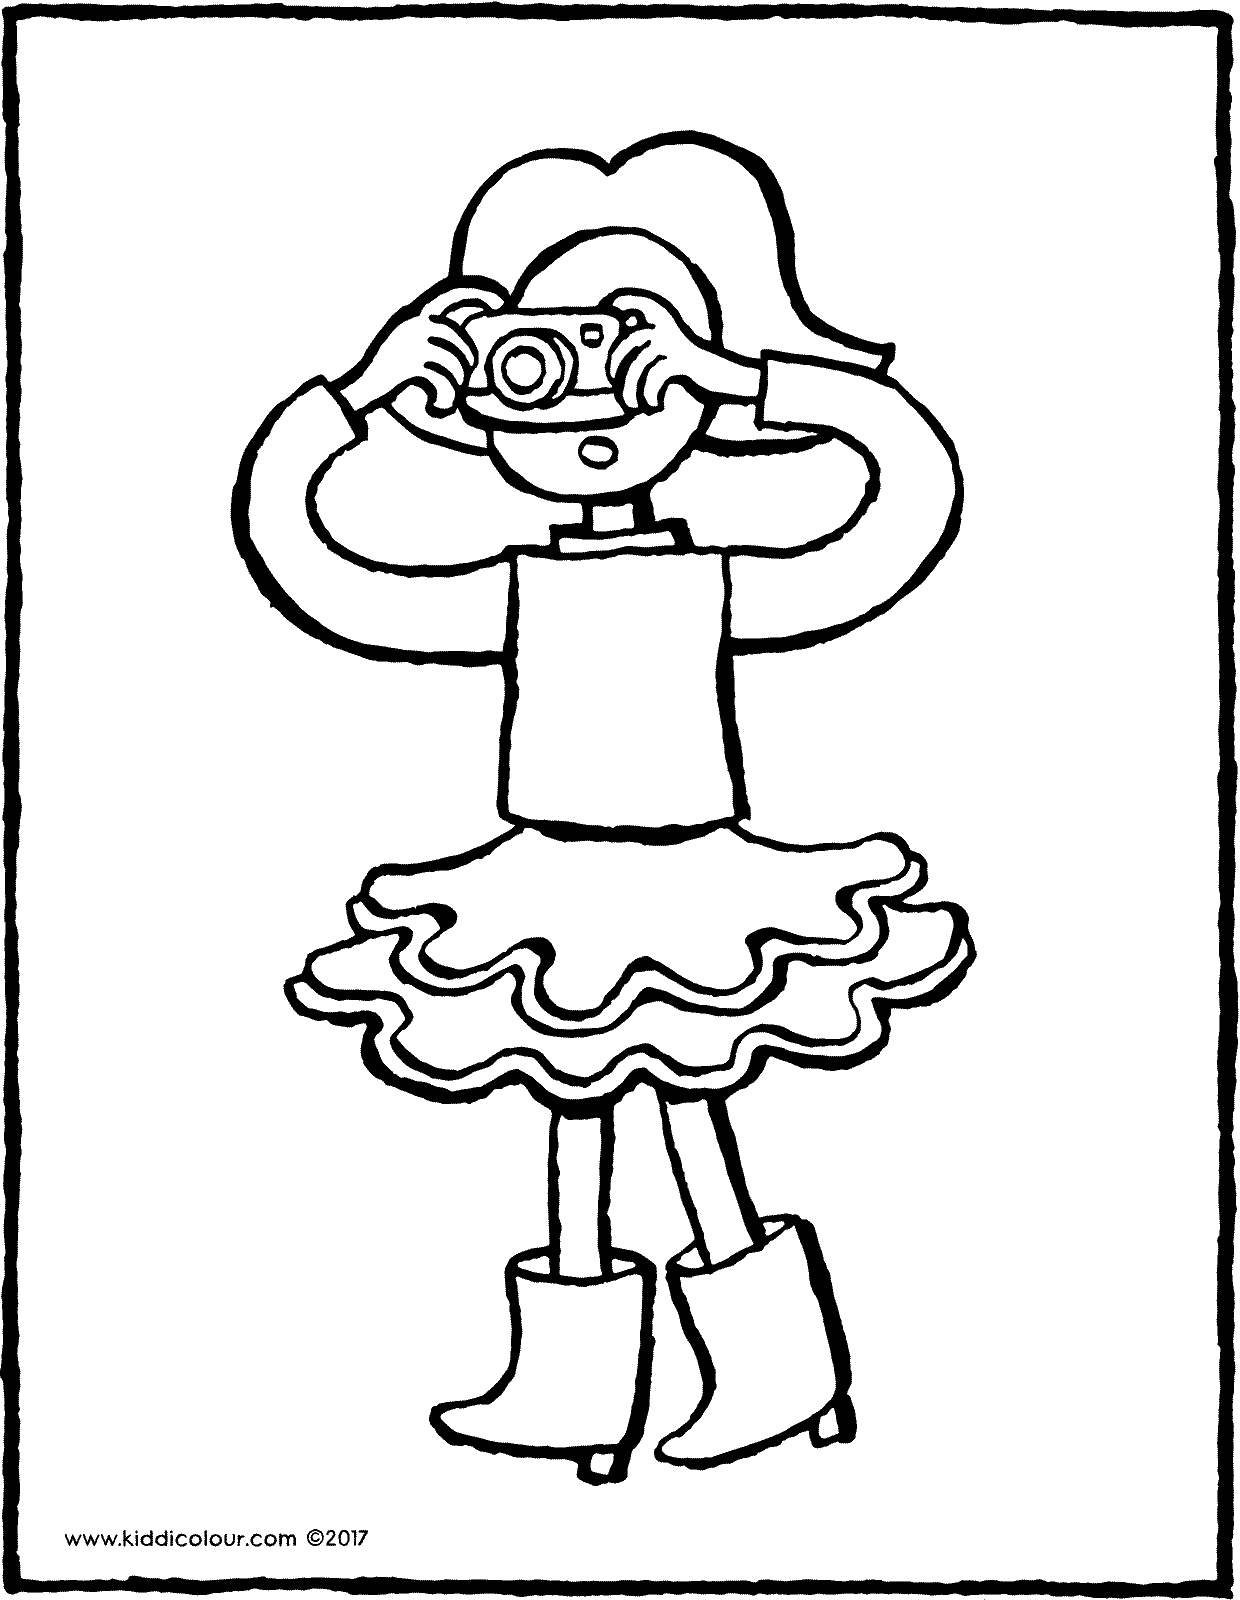 Emma is taking a photo colouring page page drawing picture 01V